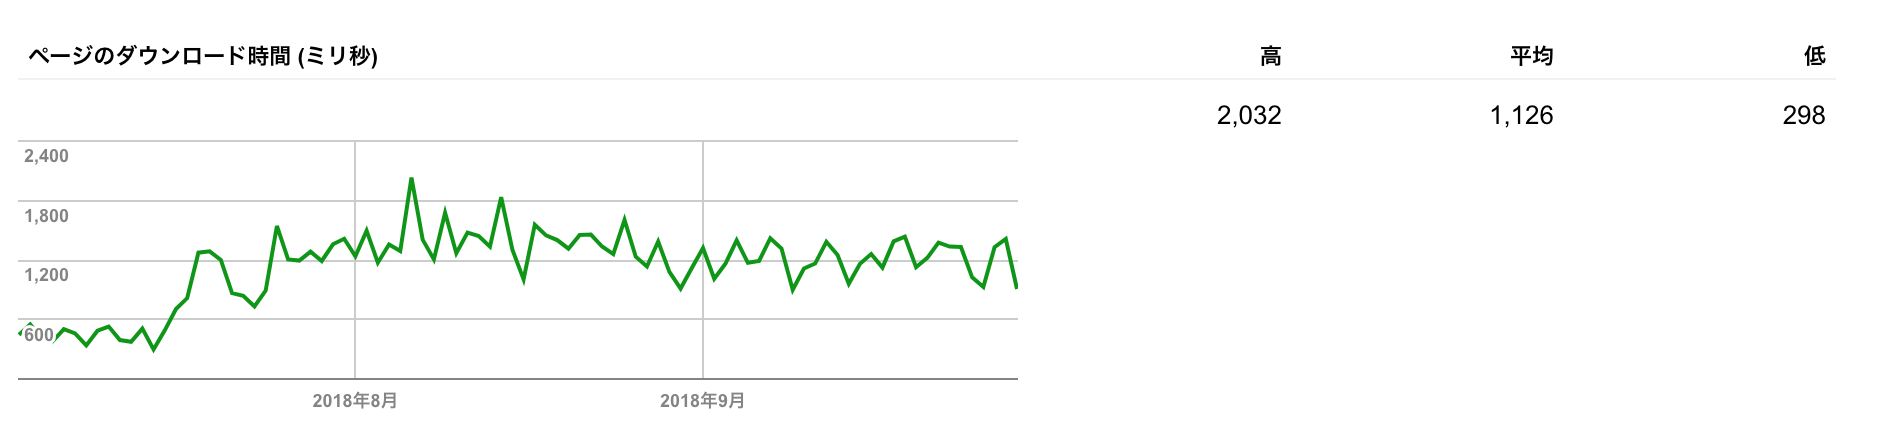 Search Console(旧)